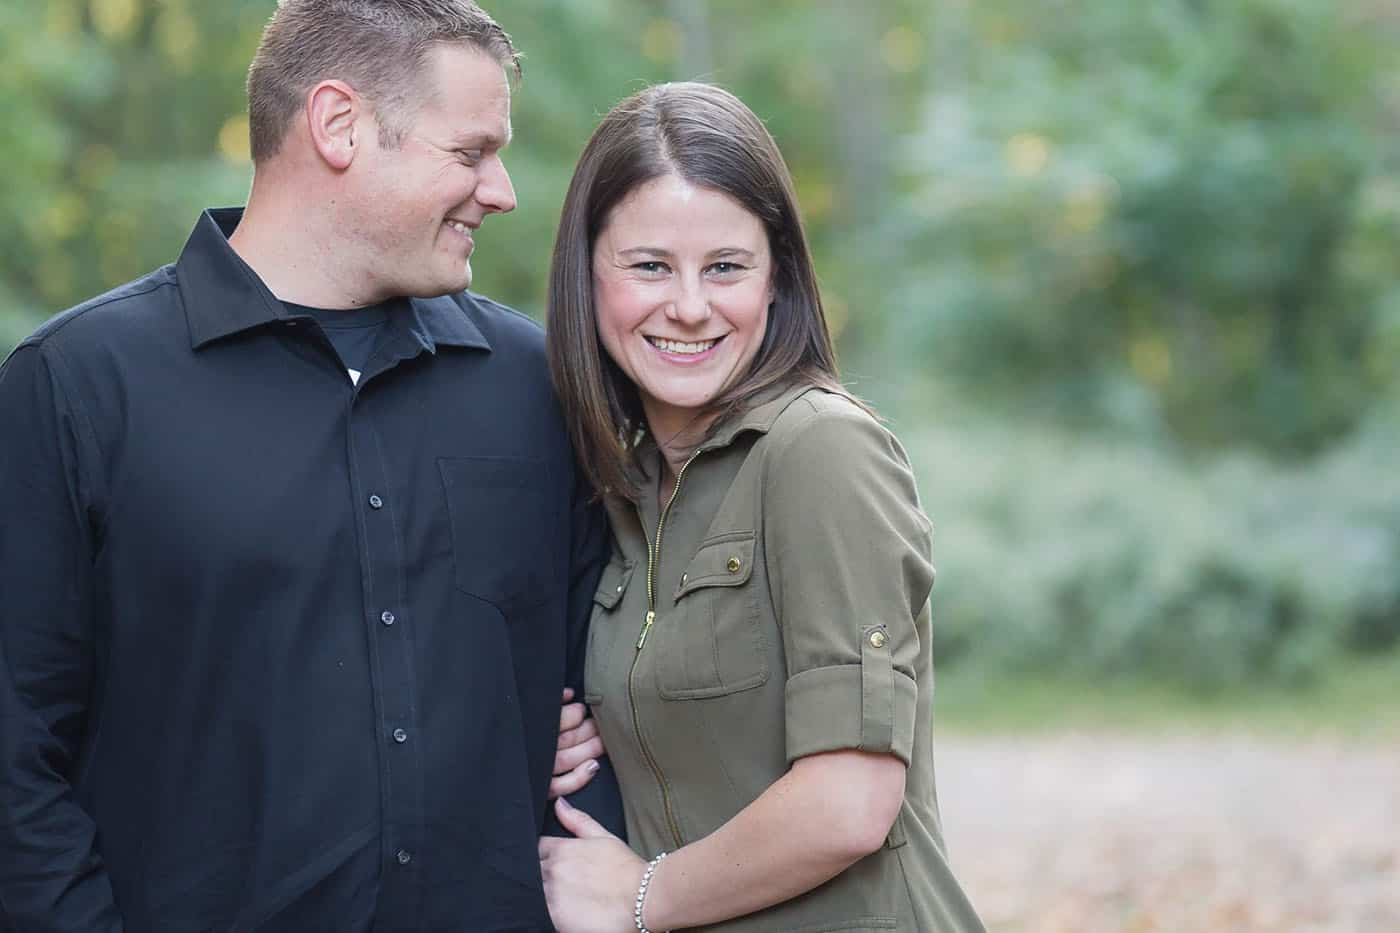 outdoor engagement portrait in navy and olive by customer service whiz cinnamon wolfe